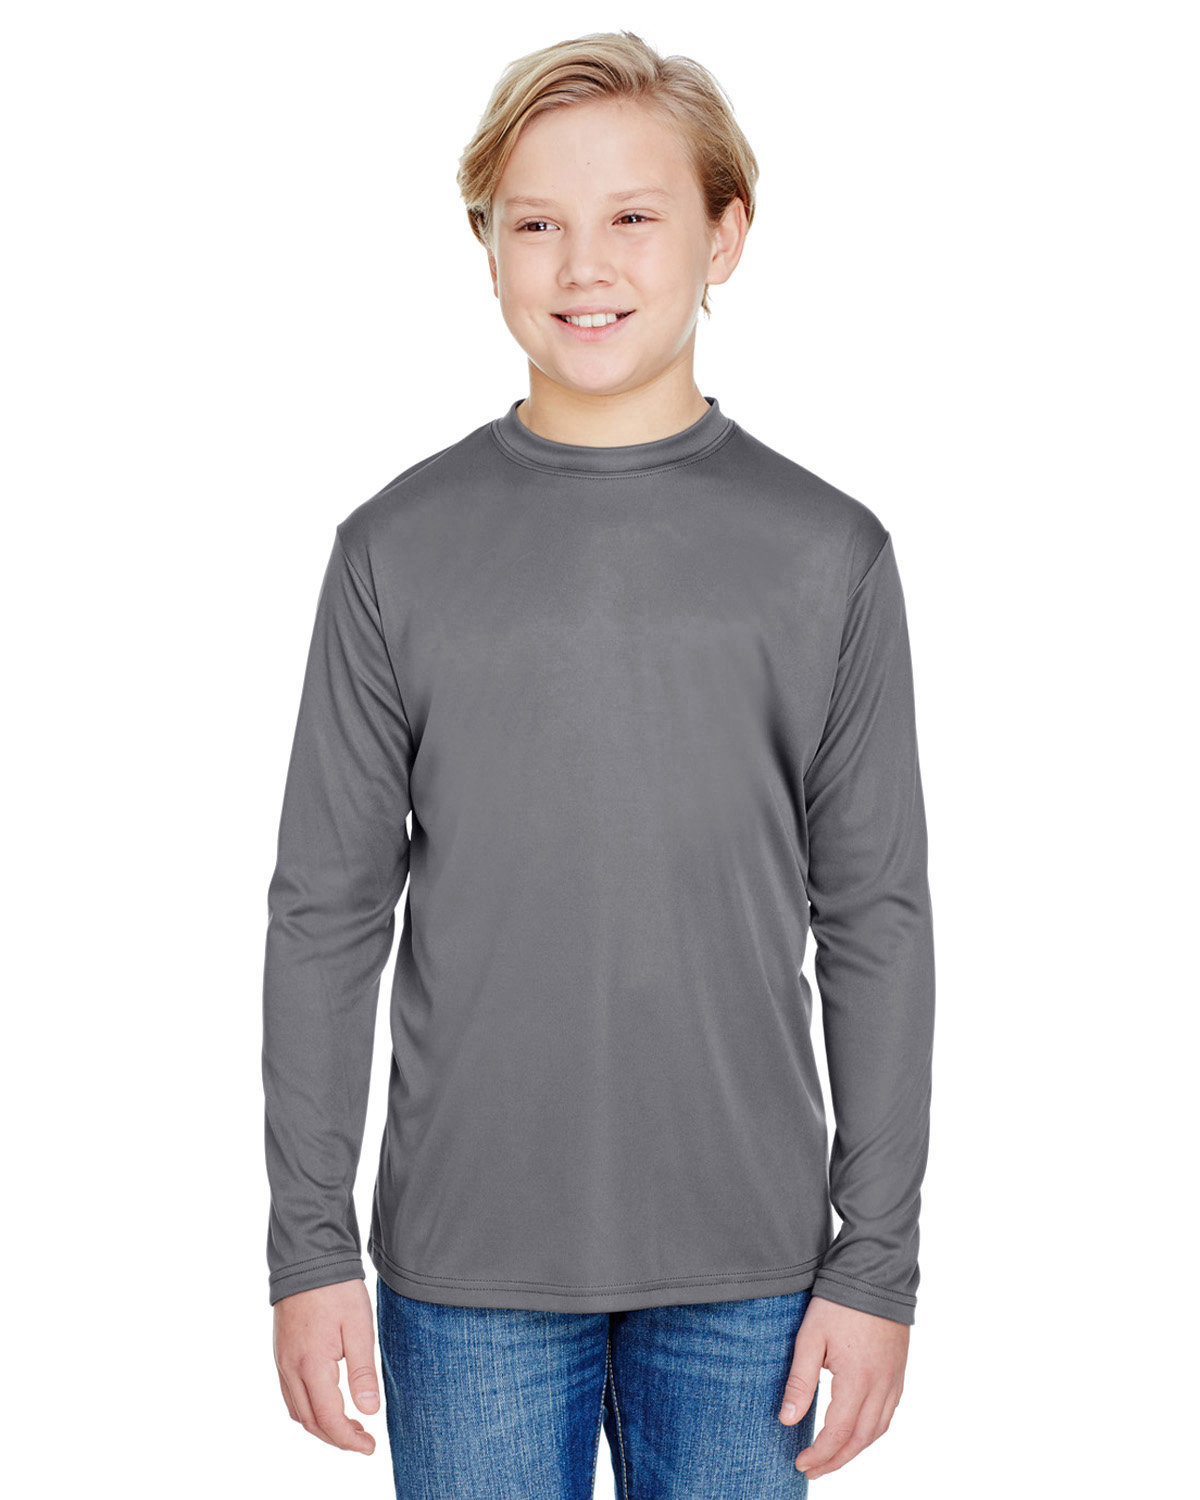 A4 Youth Long Sleeve Cooling Performance Crew Shirt GRAPHITE